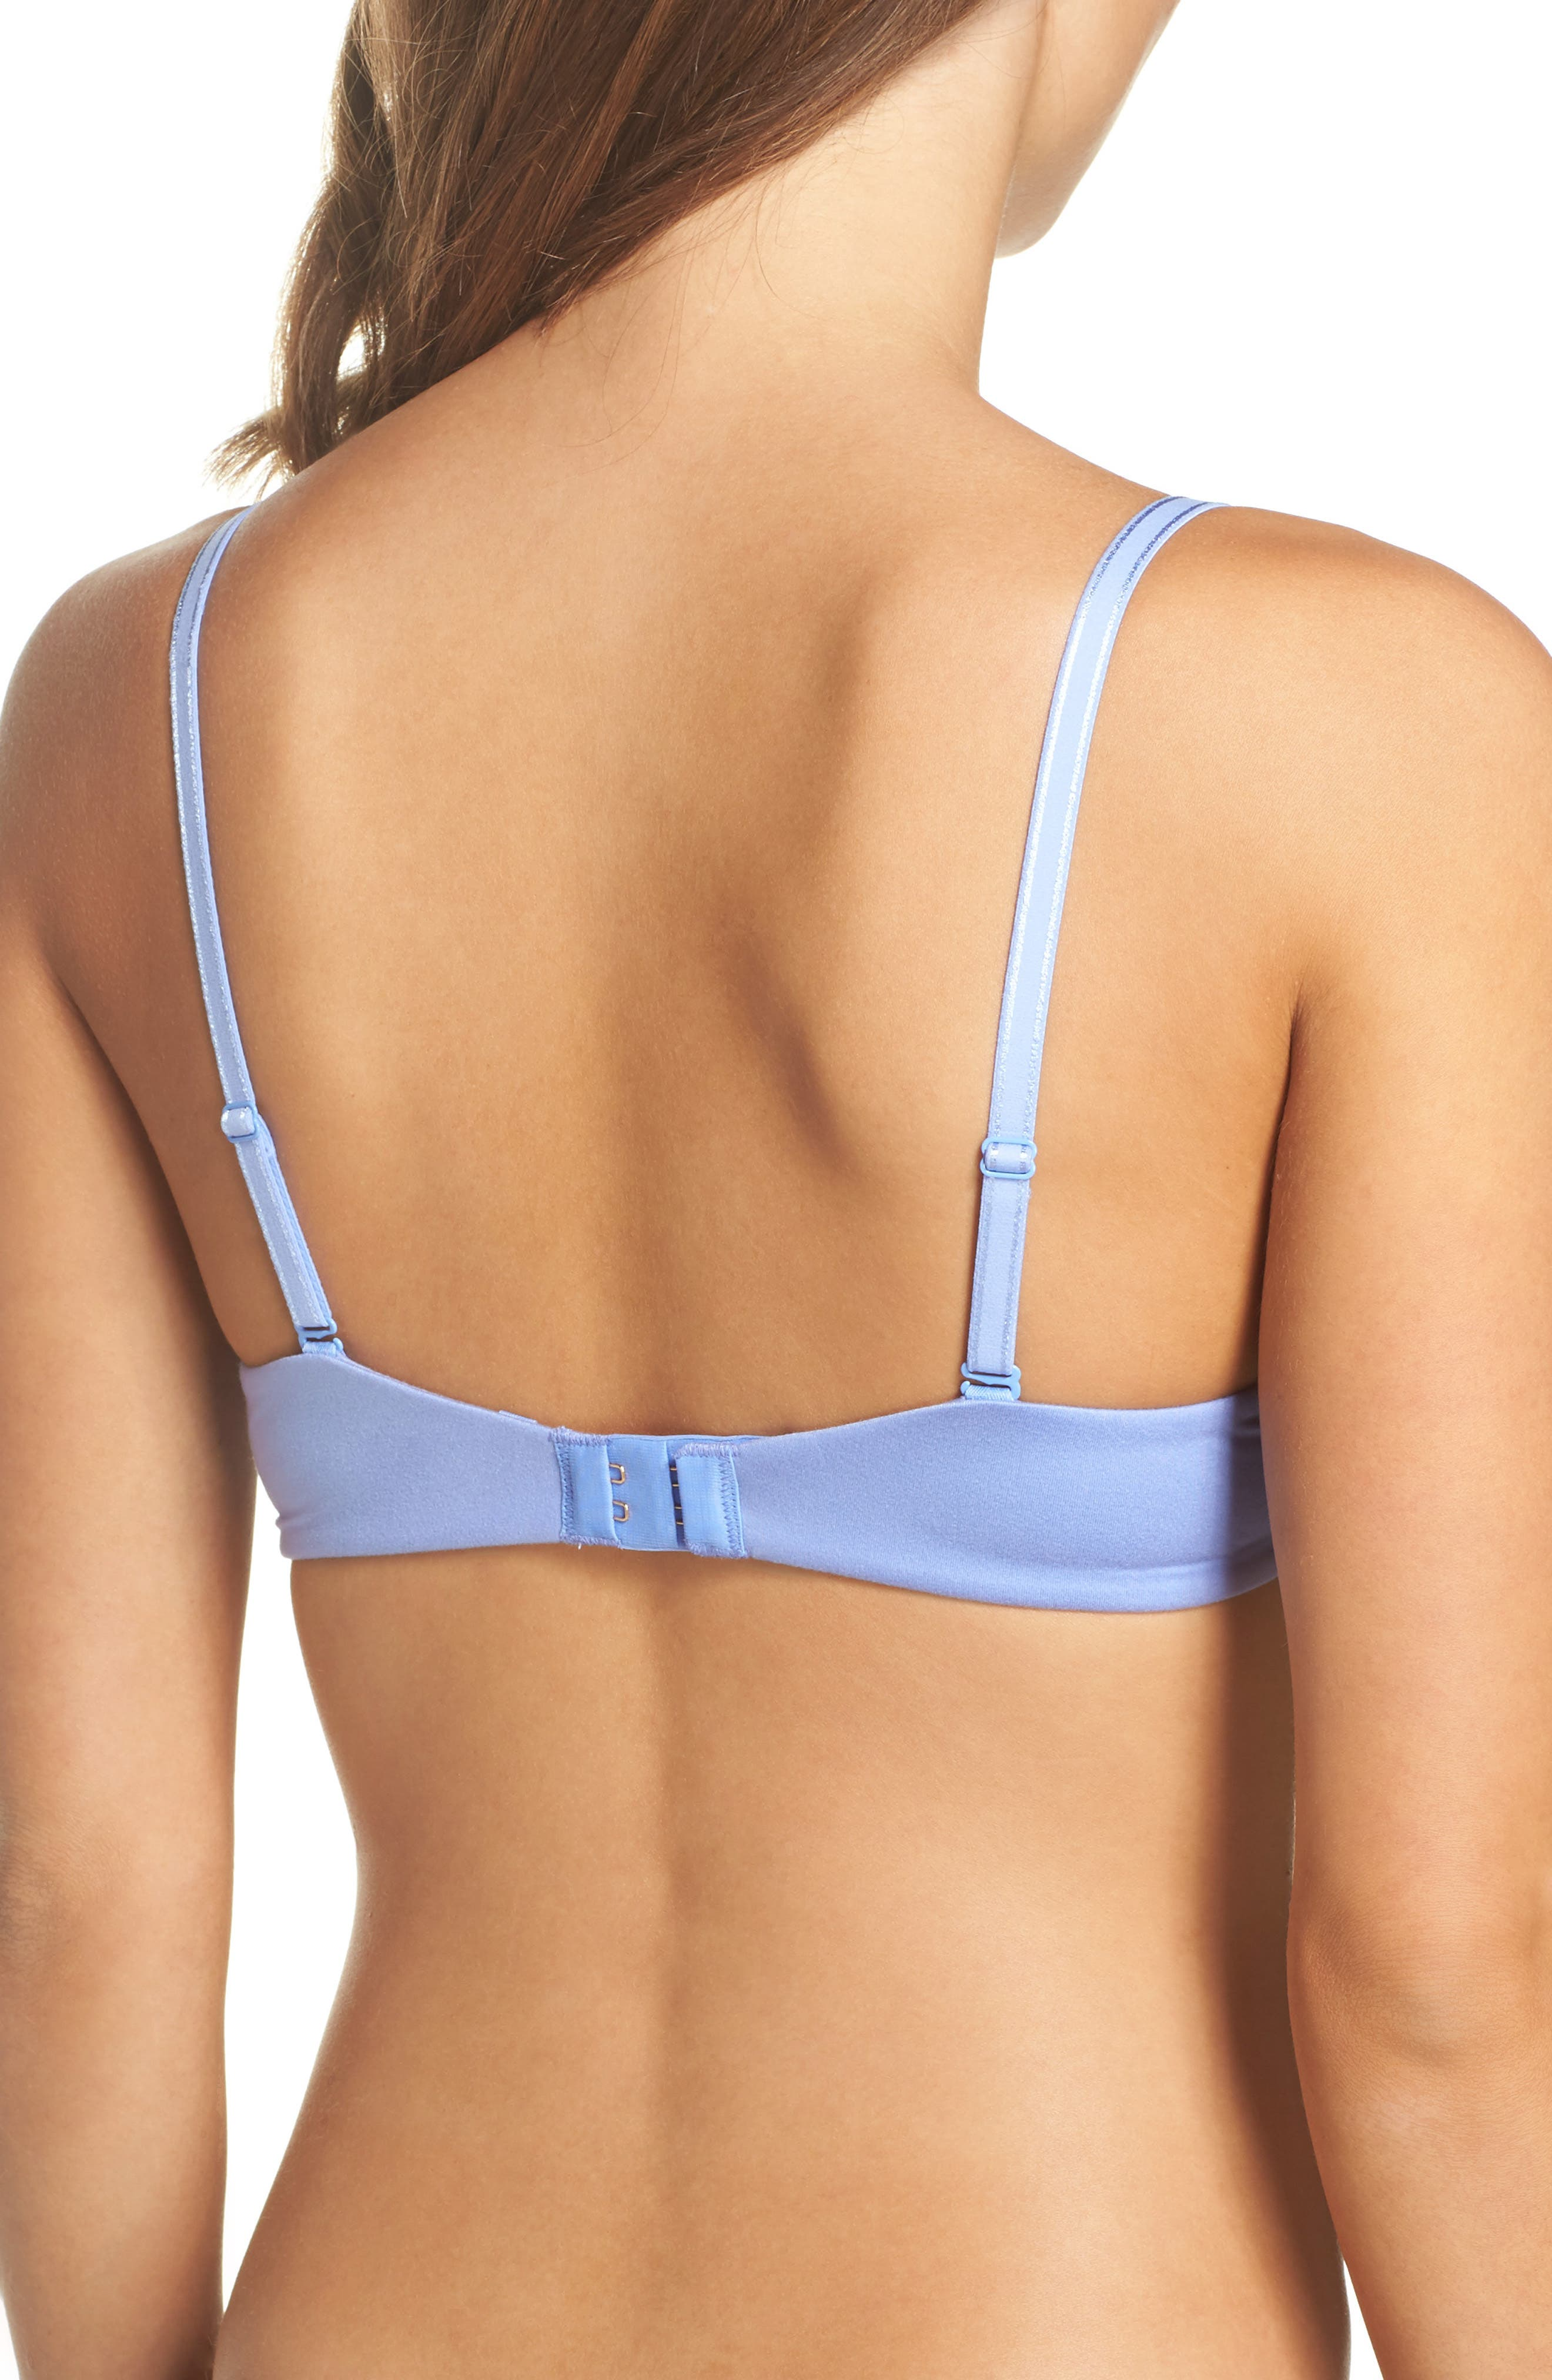 Alternate Image 2  - Betsey Johnson Forever Perfect Convertible Underwire Push-Up Bra